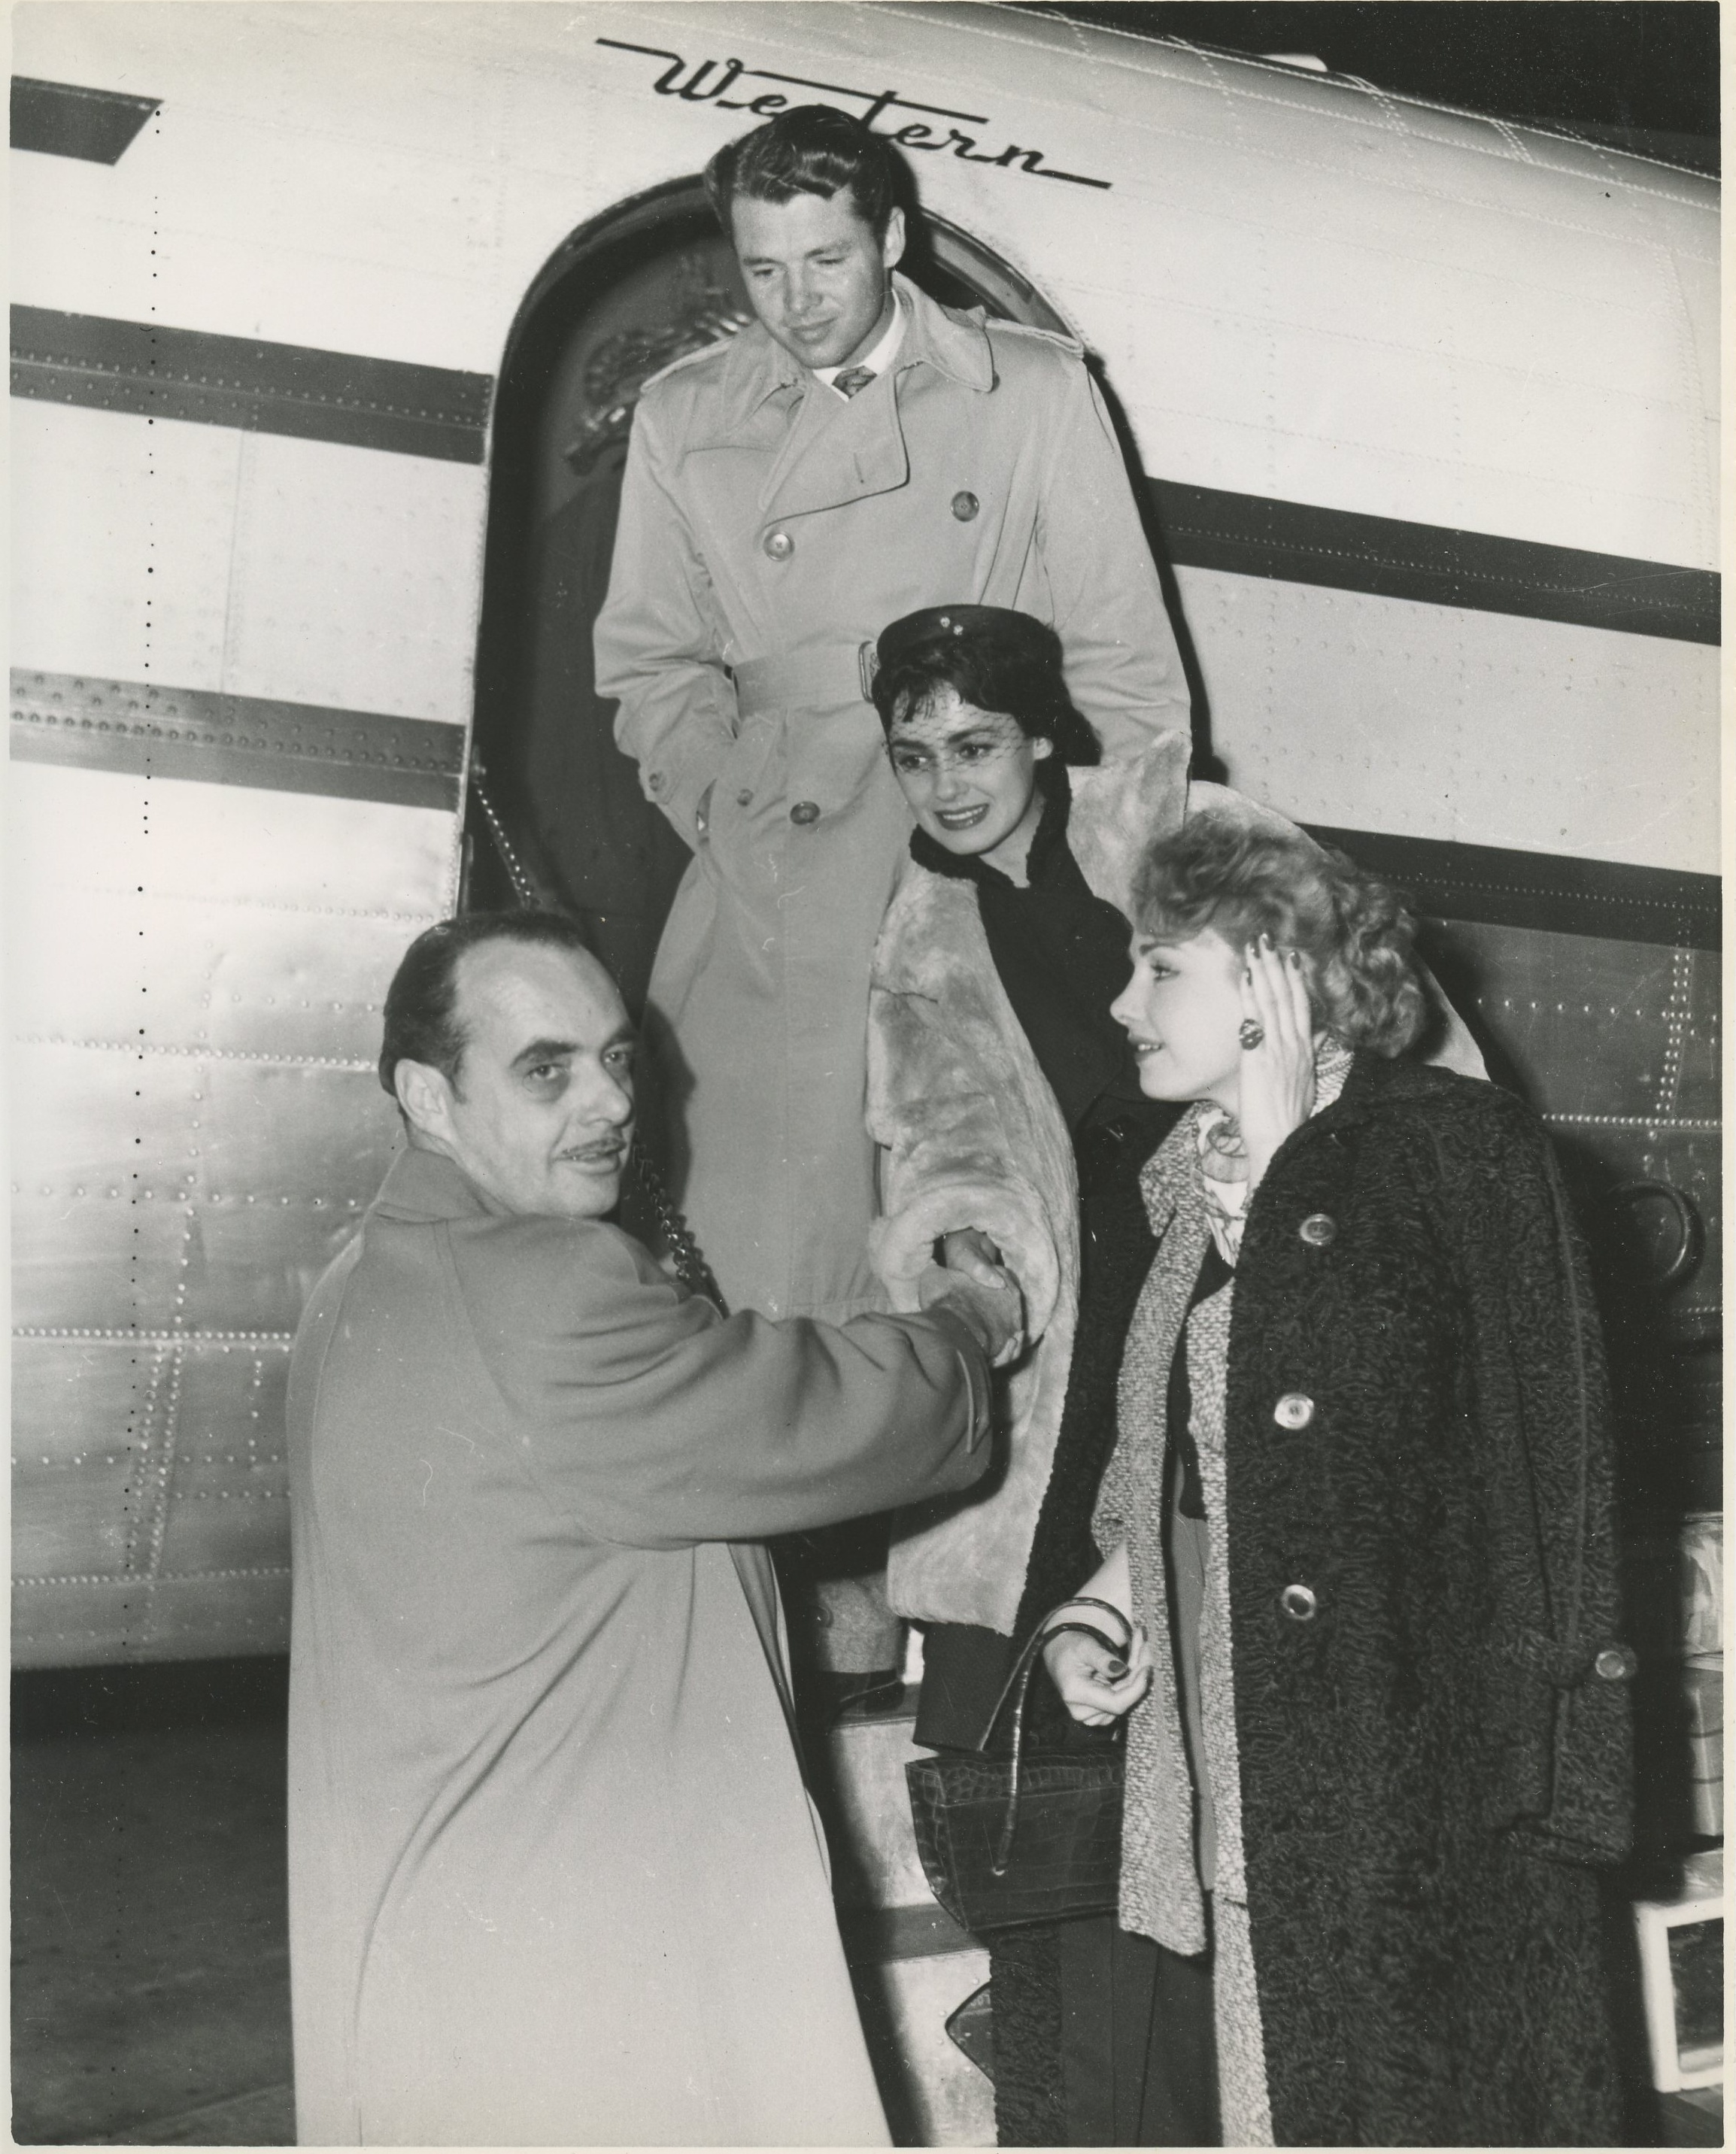 Norman Greets Renate Huy Susan Cabot And Audie Murphy As